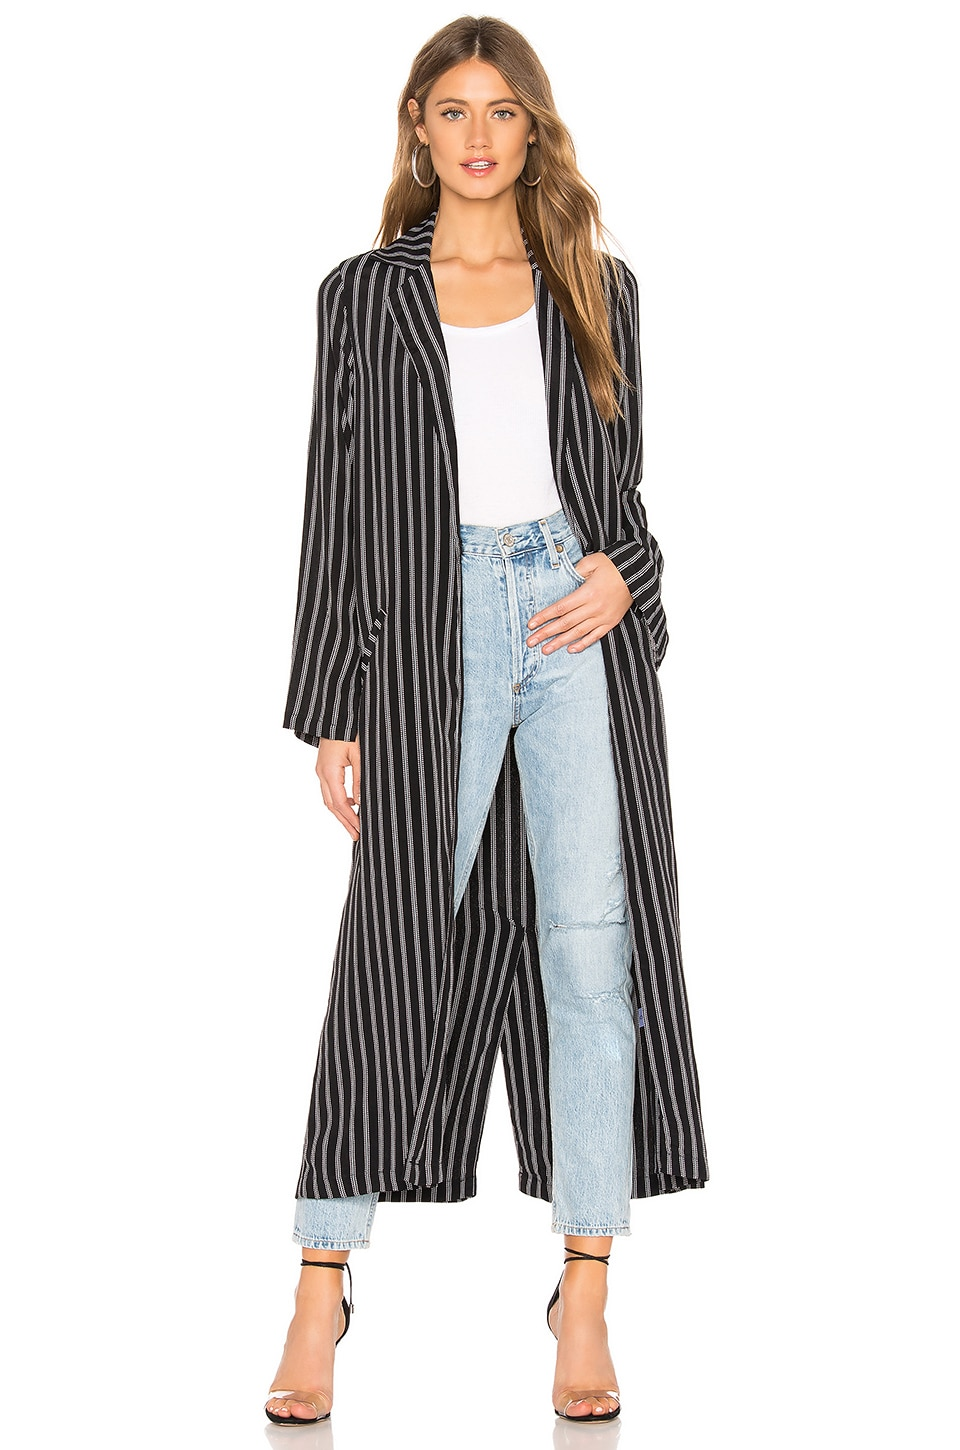 FLYNN SKYE Athena Duster in Black Stripe